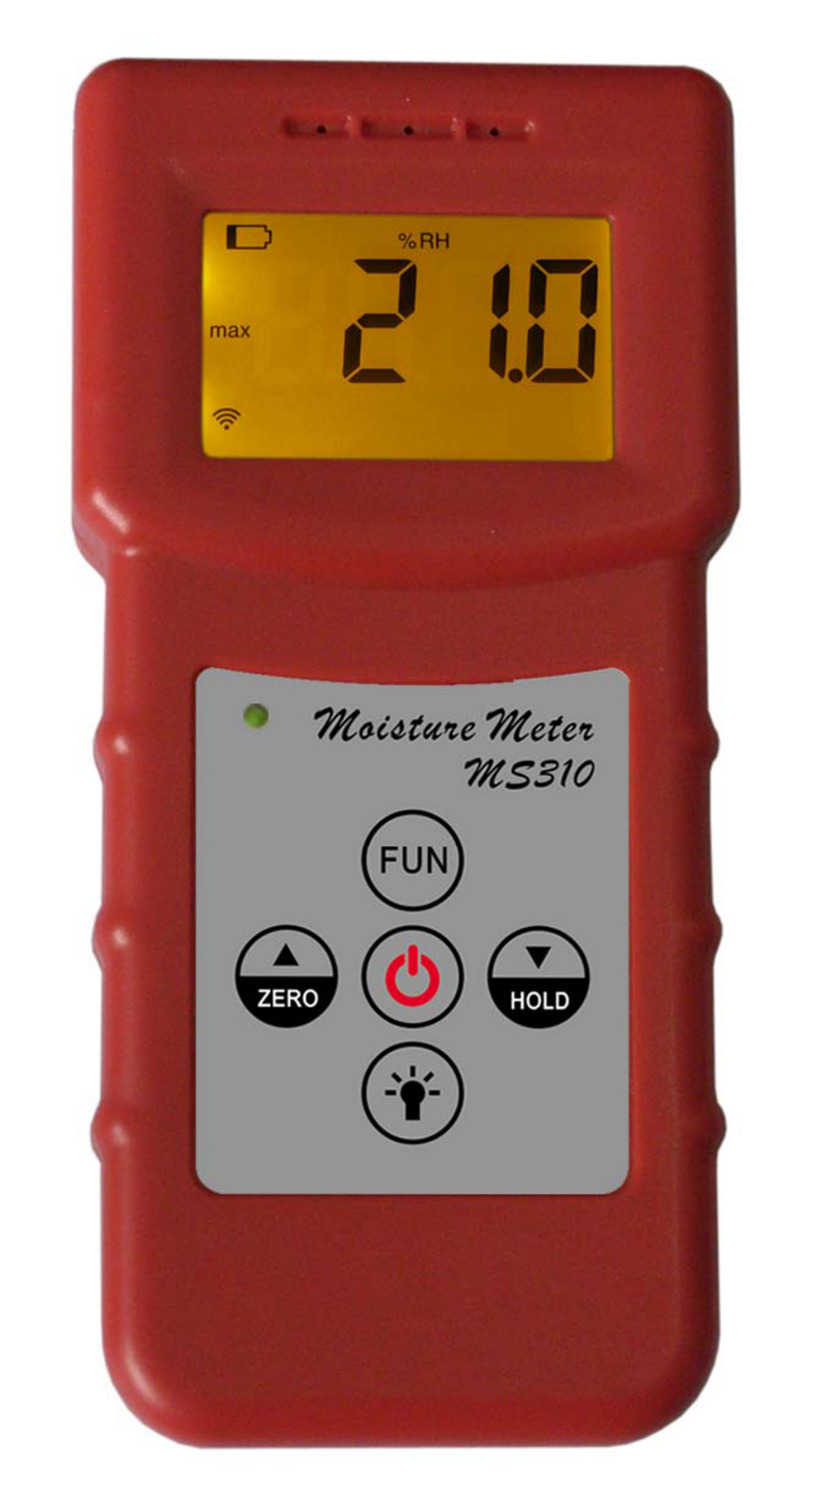 Inductive moisture meter MS310 FOR woodwork,paper making,flakeboard,furniture,building,timber traders concrete wood.. digital inductive wood moisture meter redwood timber range 0 100%